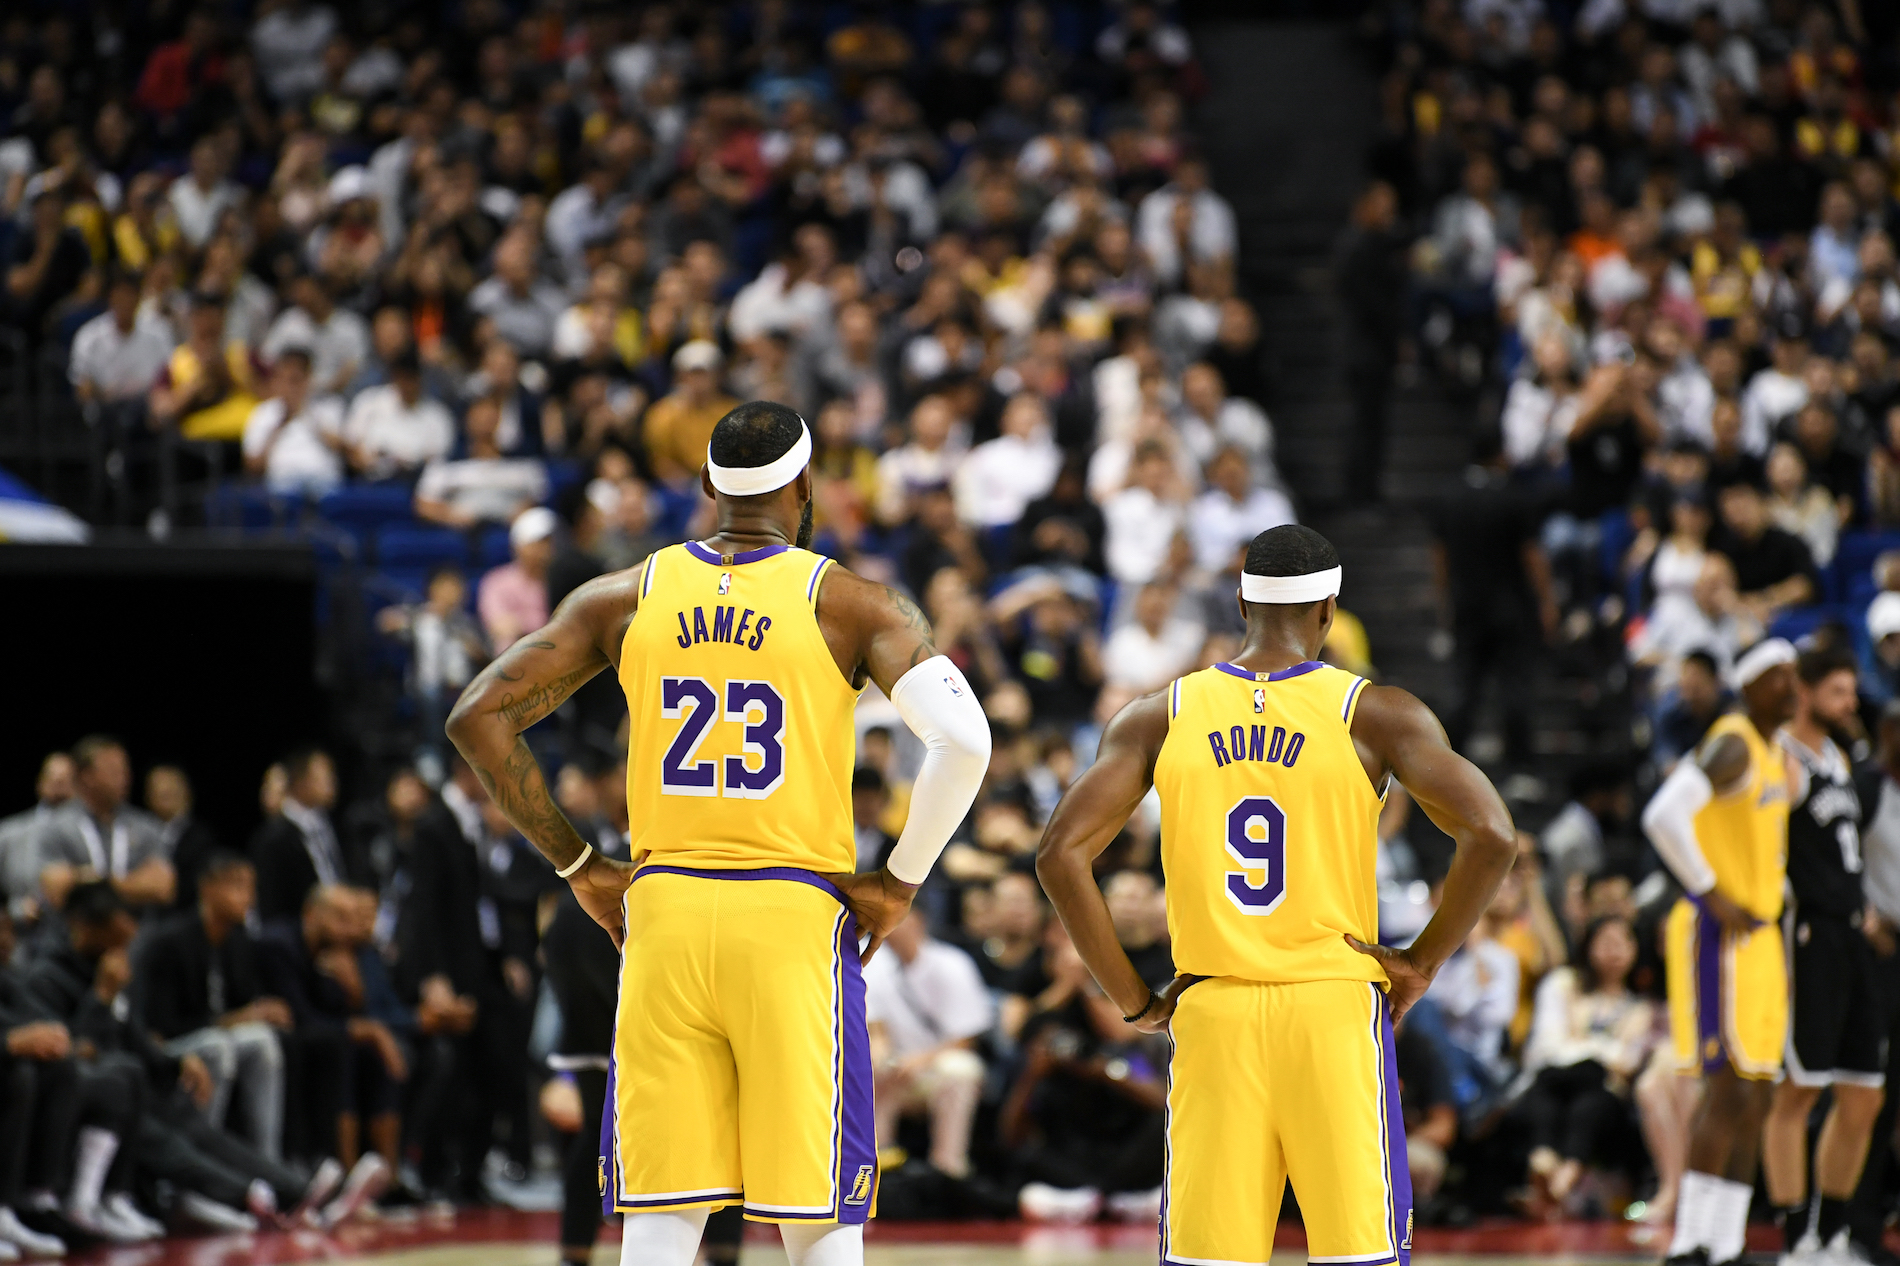 The Lakers are one of the favorites to win it all in 2020, but a devastating injury just put a damper on their title hopes.